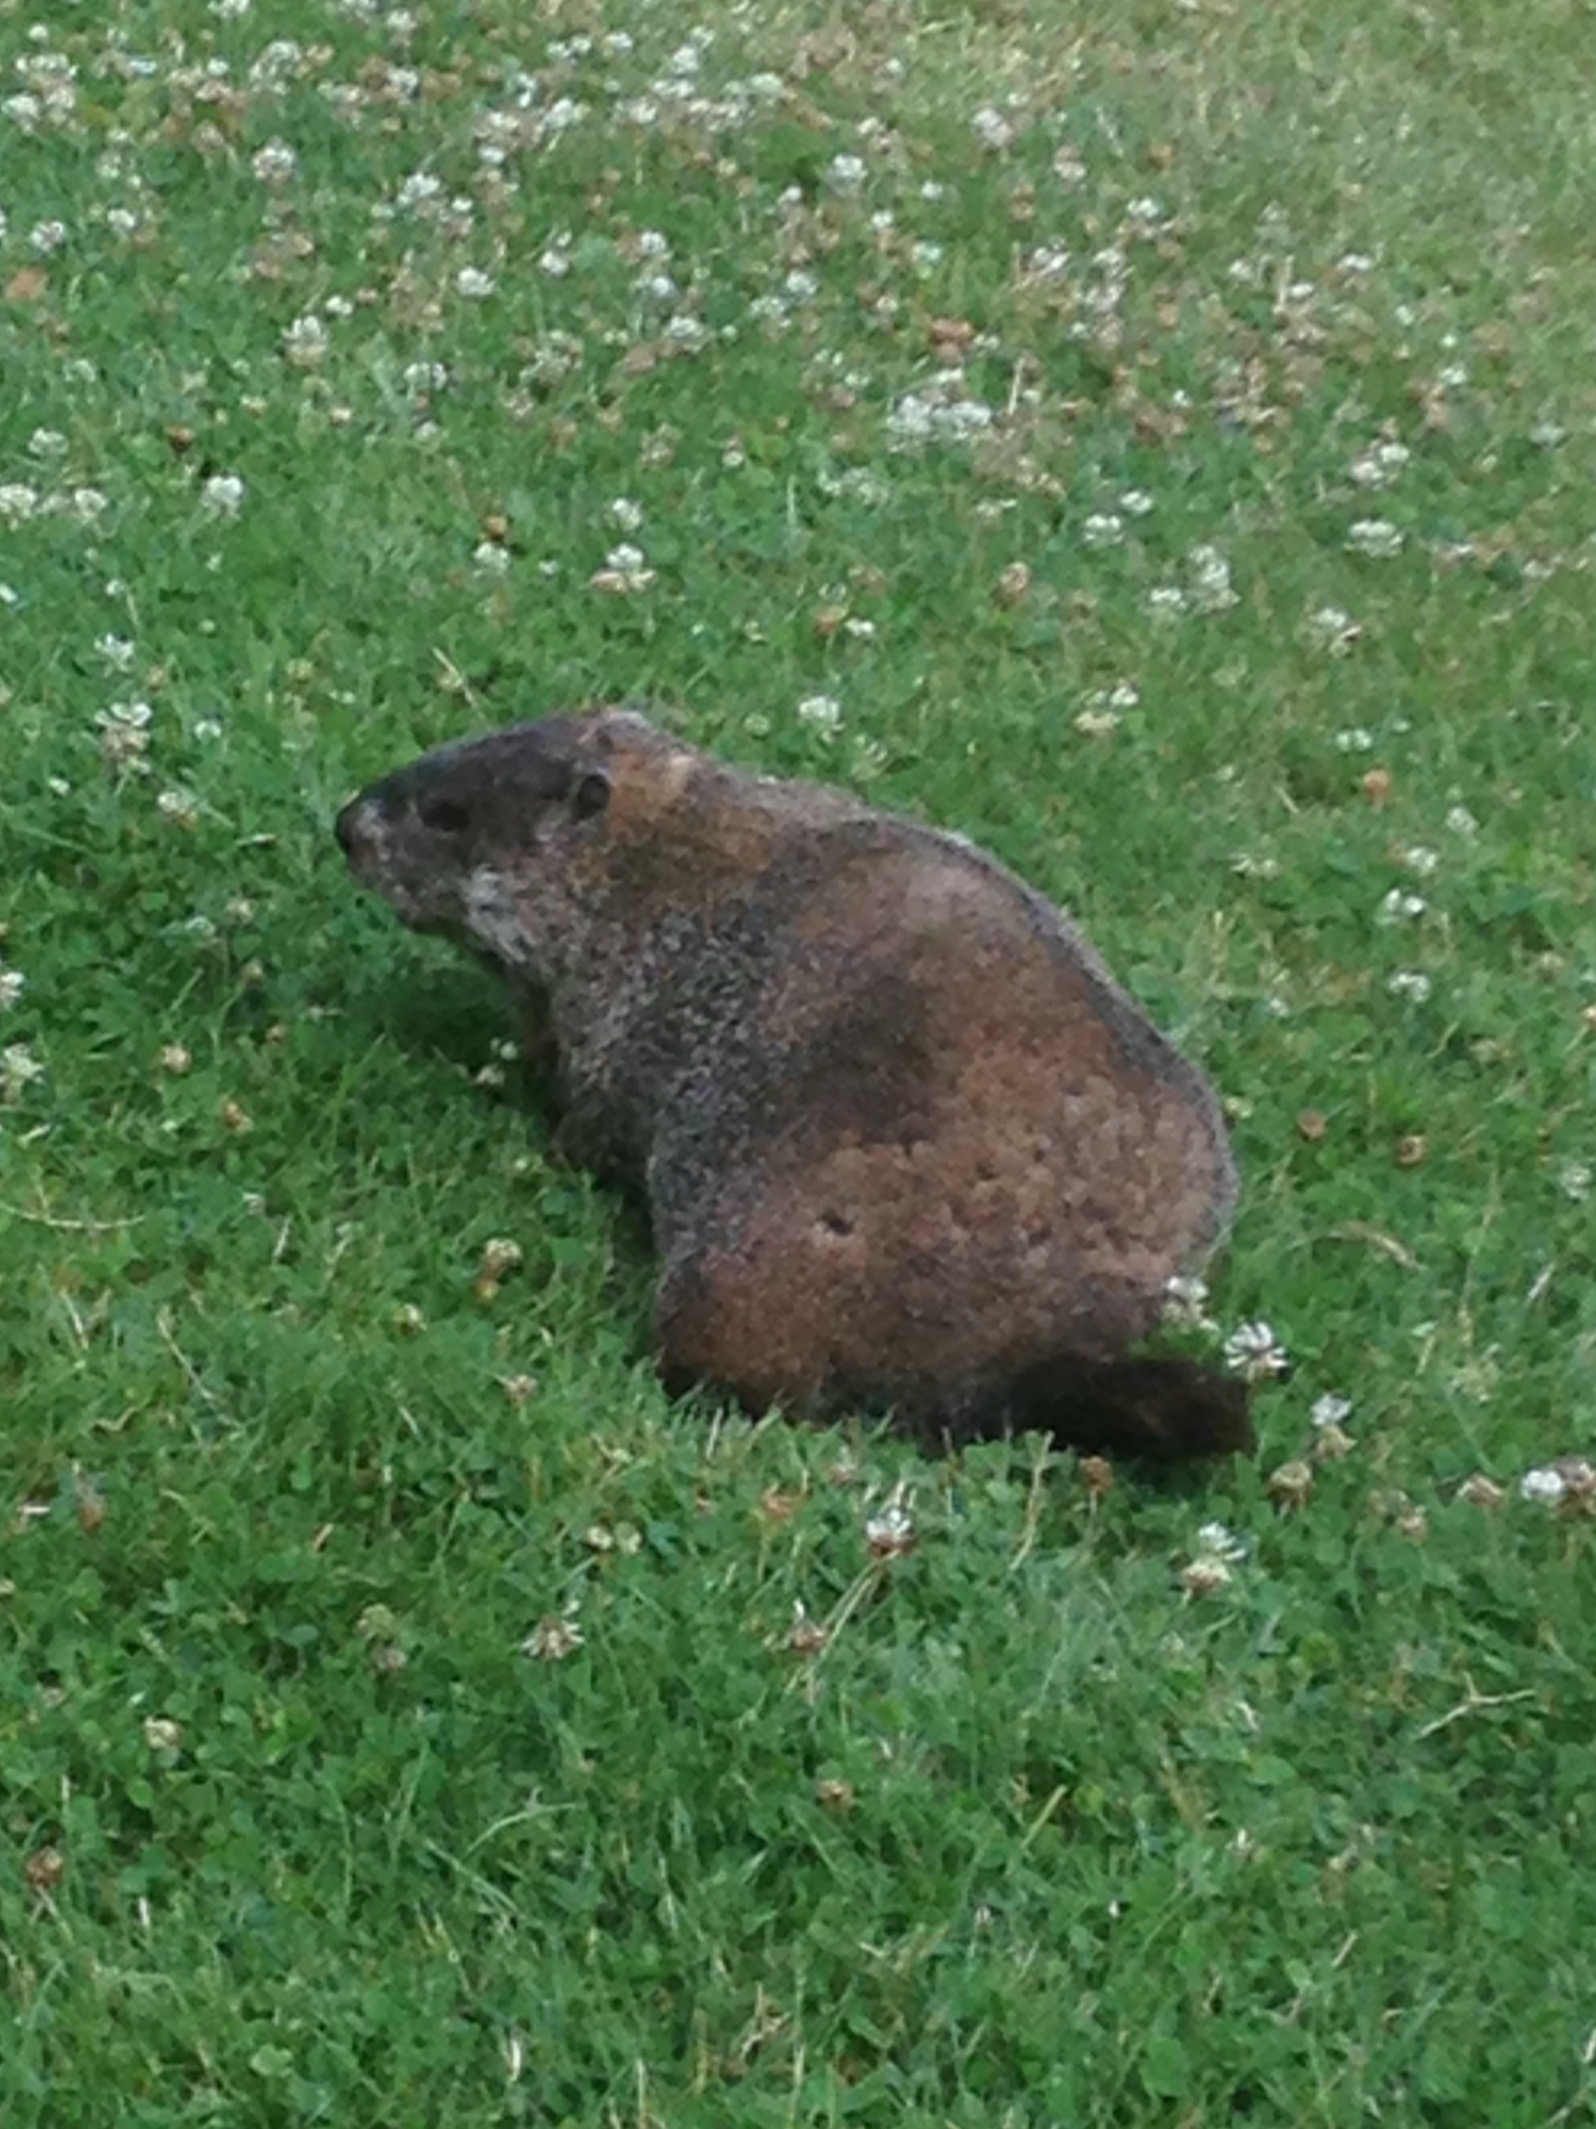 Male groundhogs establish territories. They will mate with the females on their territory, visiting the dens often through the gestation period. Once the young are born, the male does not return until the next breeding season.